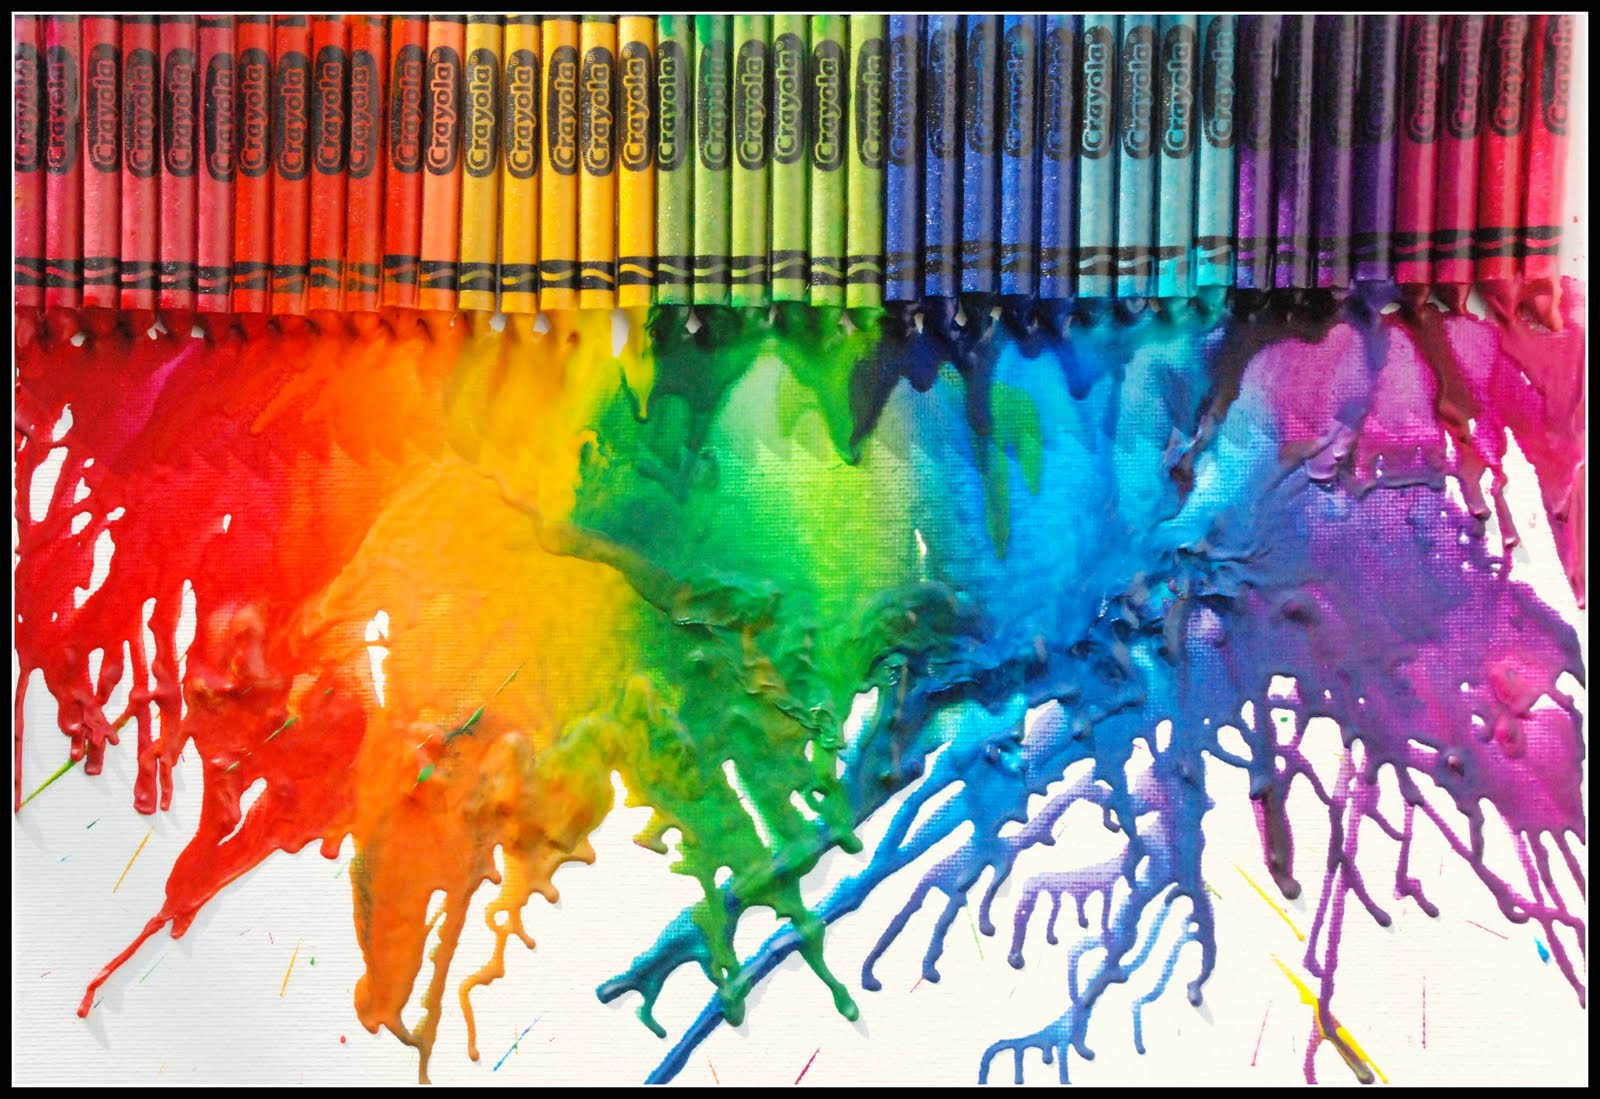 Crayon melting art images amp pictures becuo - Homemade Serenity Melted Crayon Canvas Art